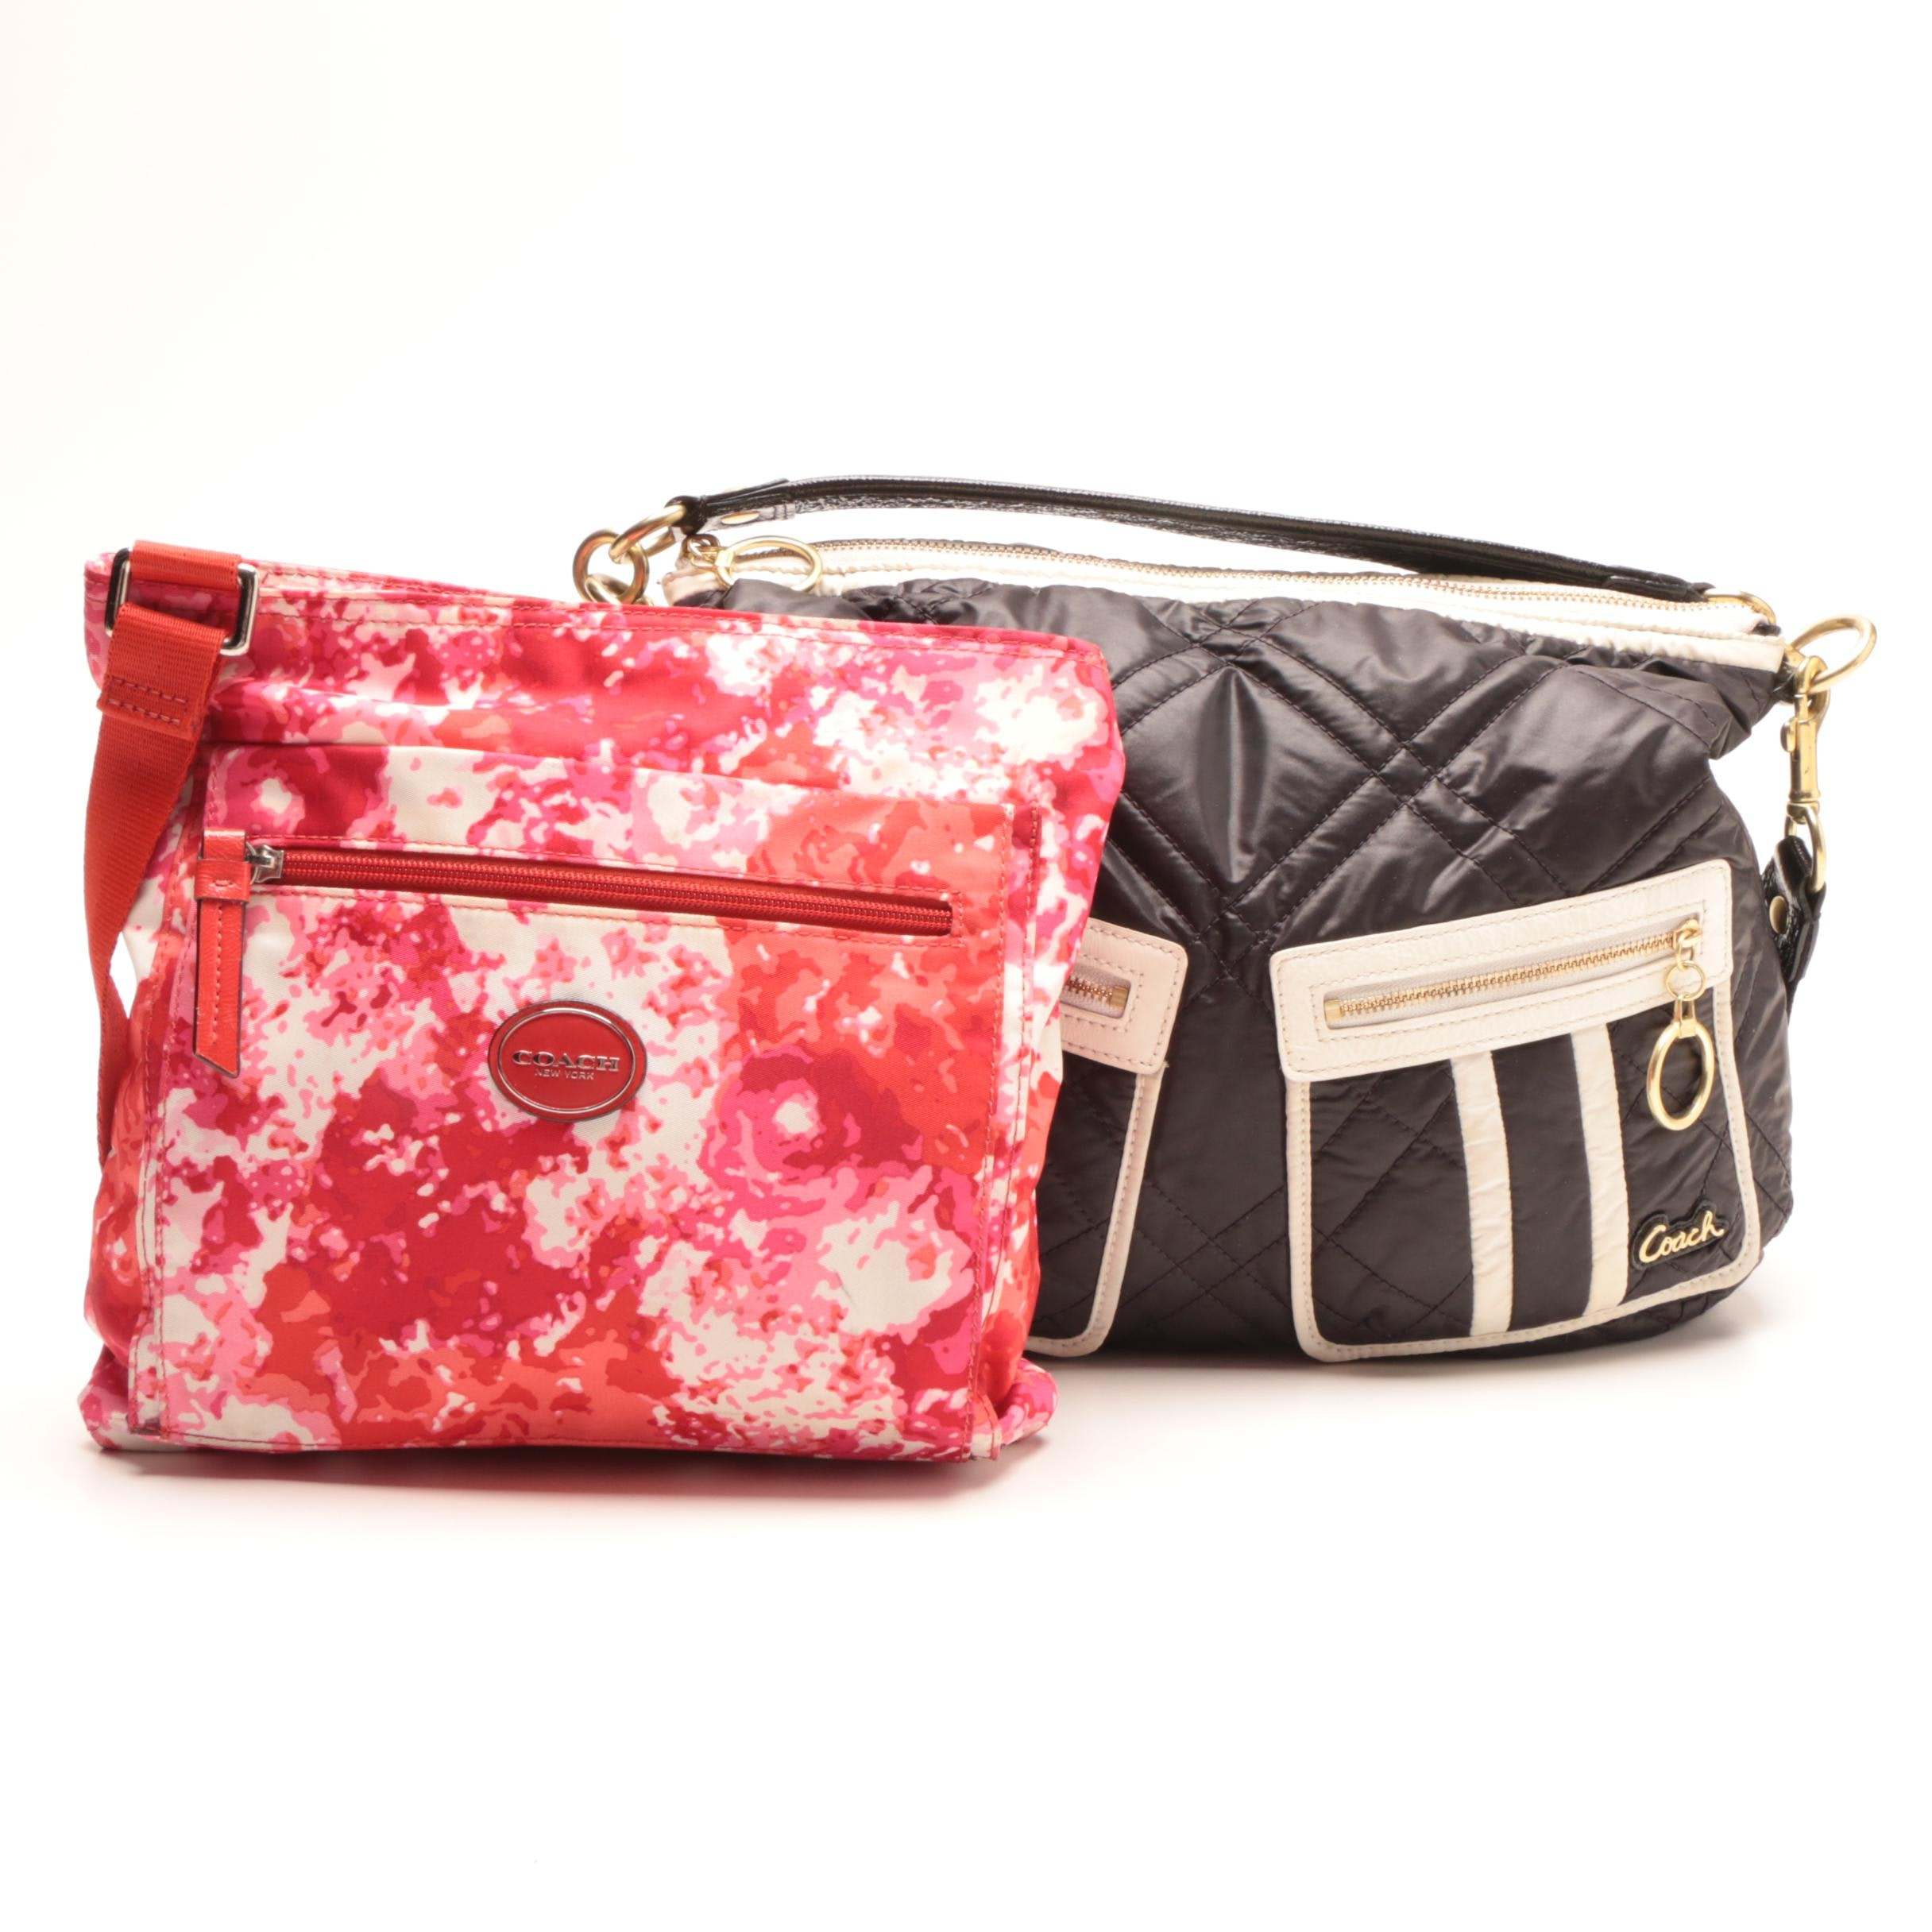 Coach Poppy Ski Bunny Hobo Bag and Floral Getaway Crossbody Bag